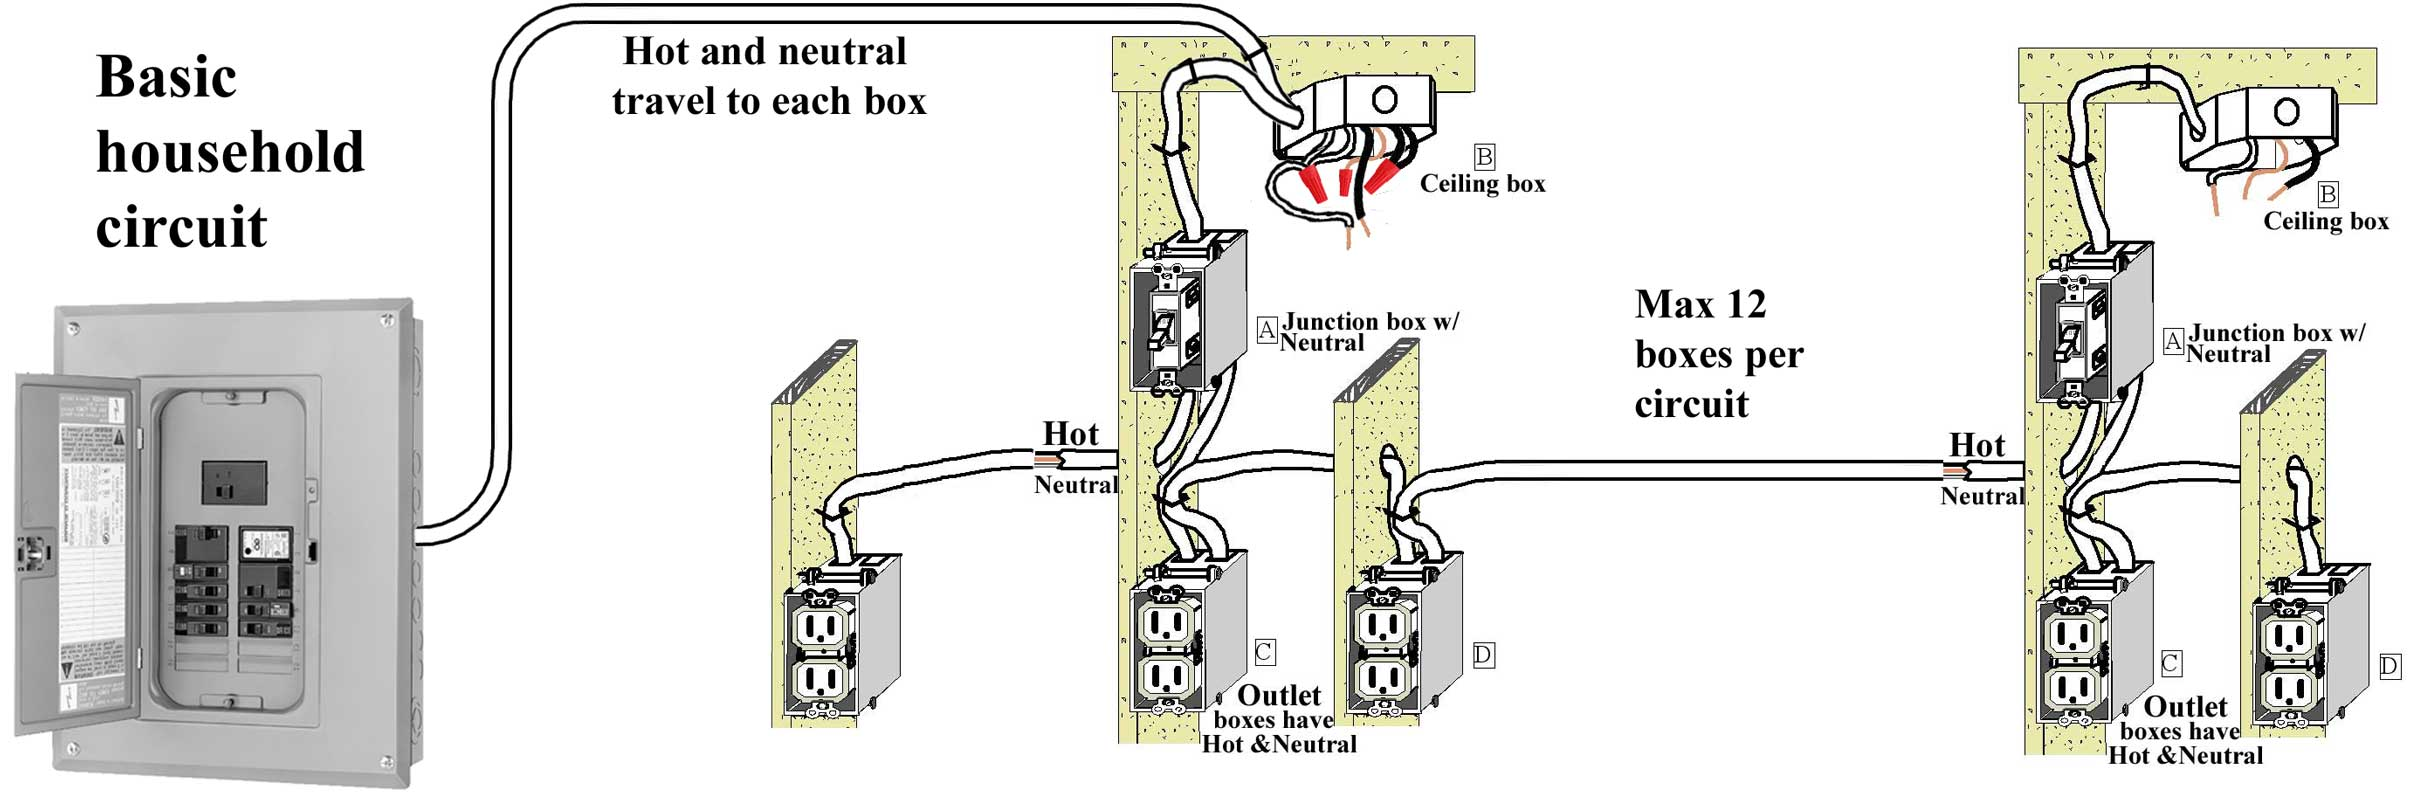 wiring diagram junction box land rover discovery 3 radio install wire to old work larger image